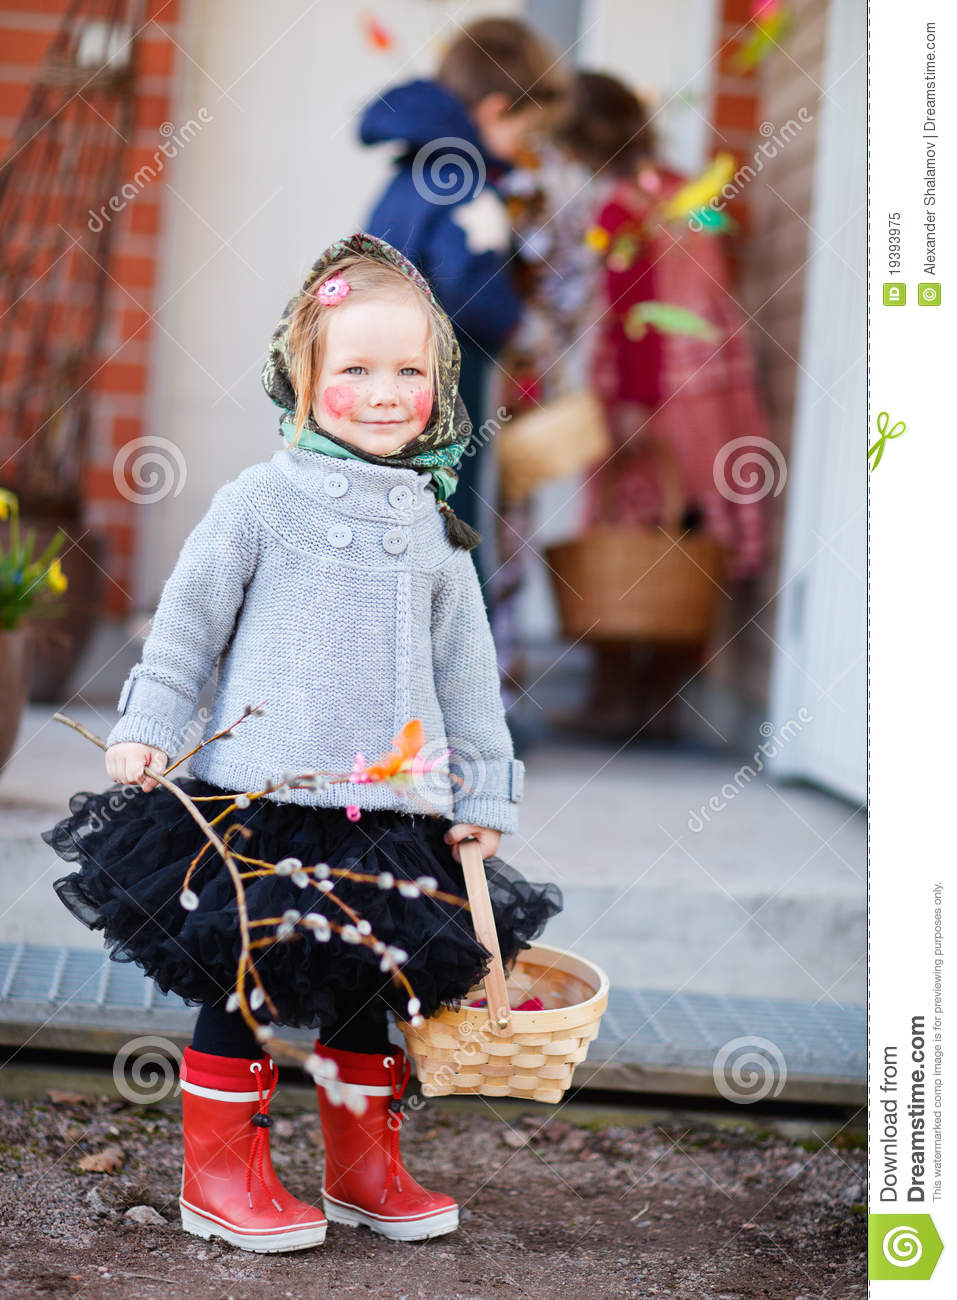 Easter Finnish Traditions Royalty Free Stock Photo - Image: 19393975